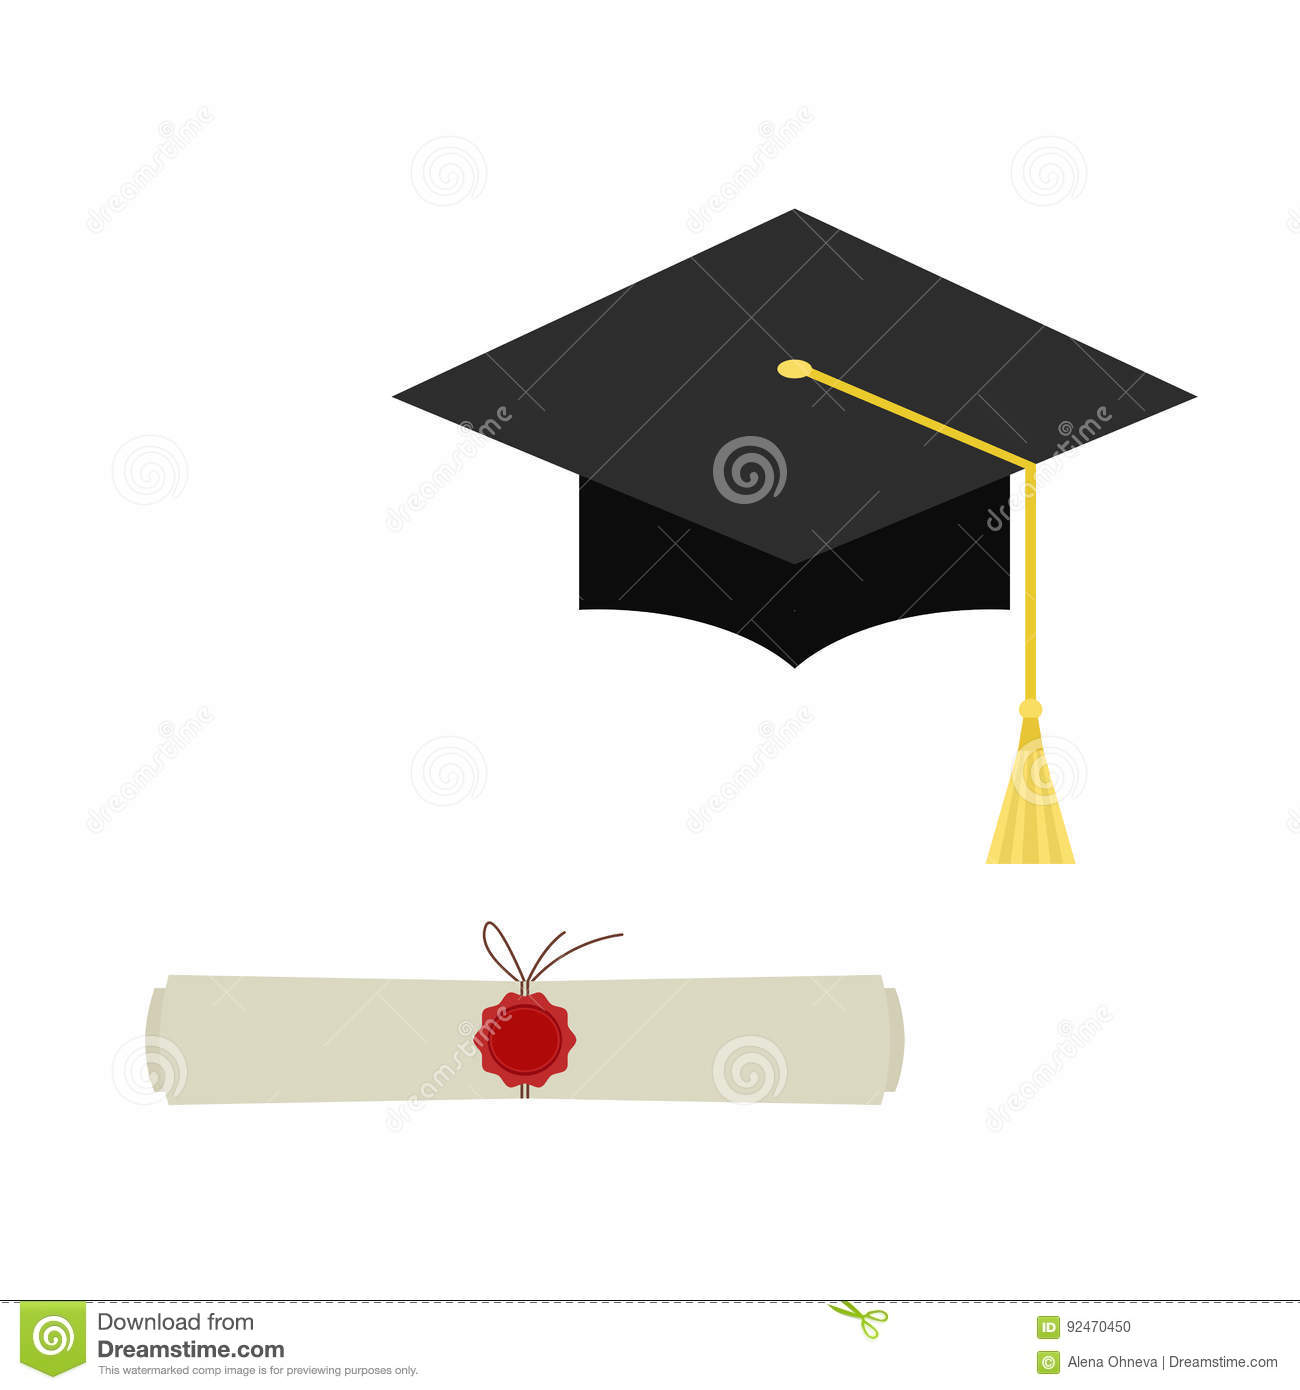 4b2c8dfff0a Black graduation cap and diploma scroll web icon isolated on white  background. Mortarboard flat design vector illustration.